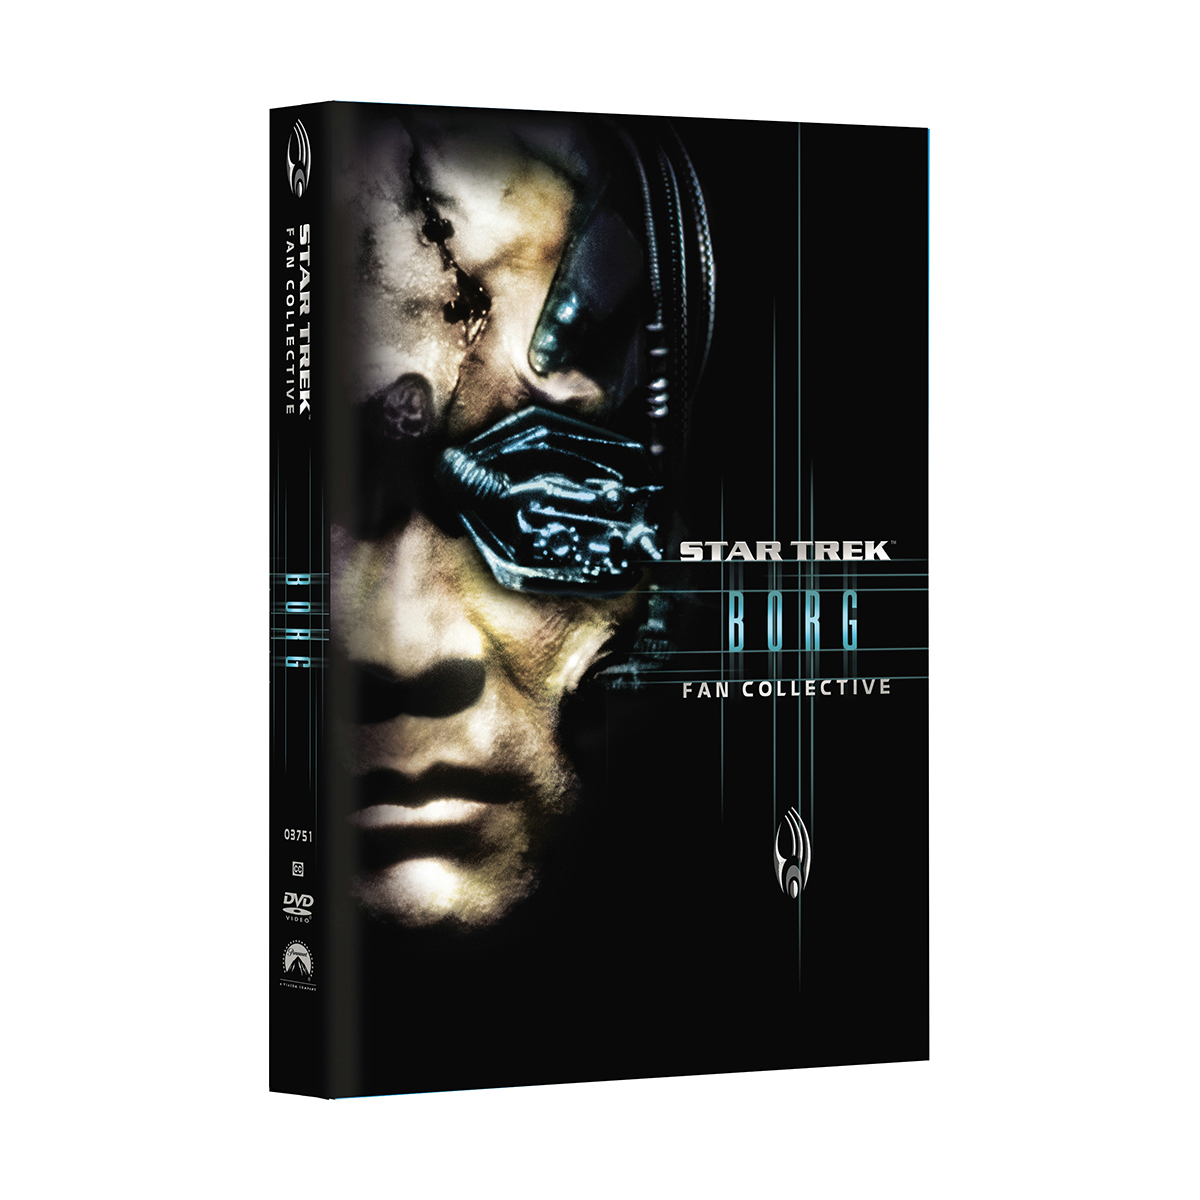 Star Trek: Fan Collective - Borg DVD